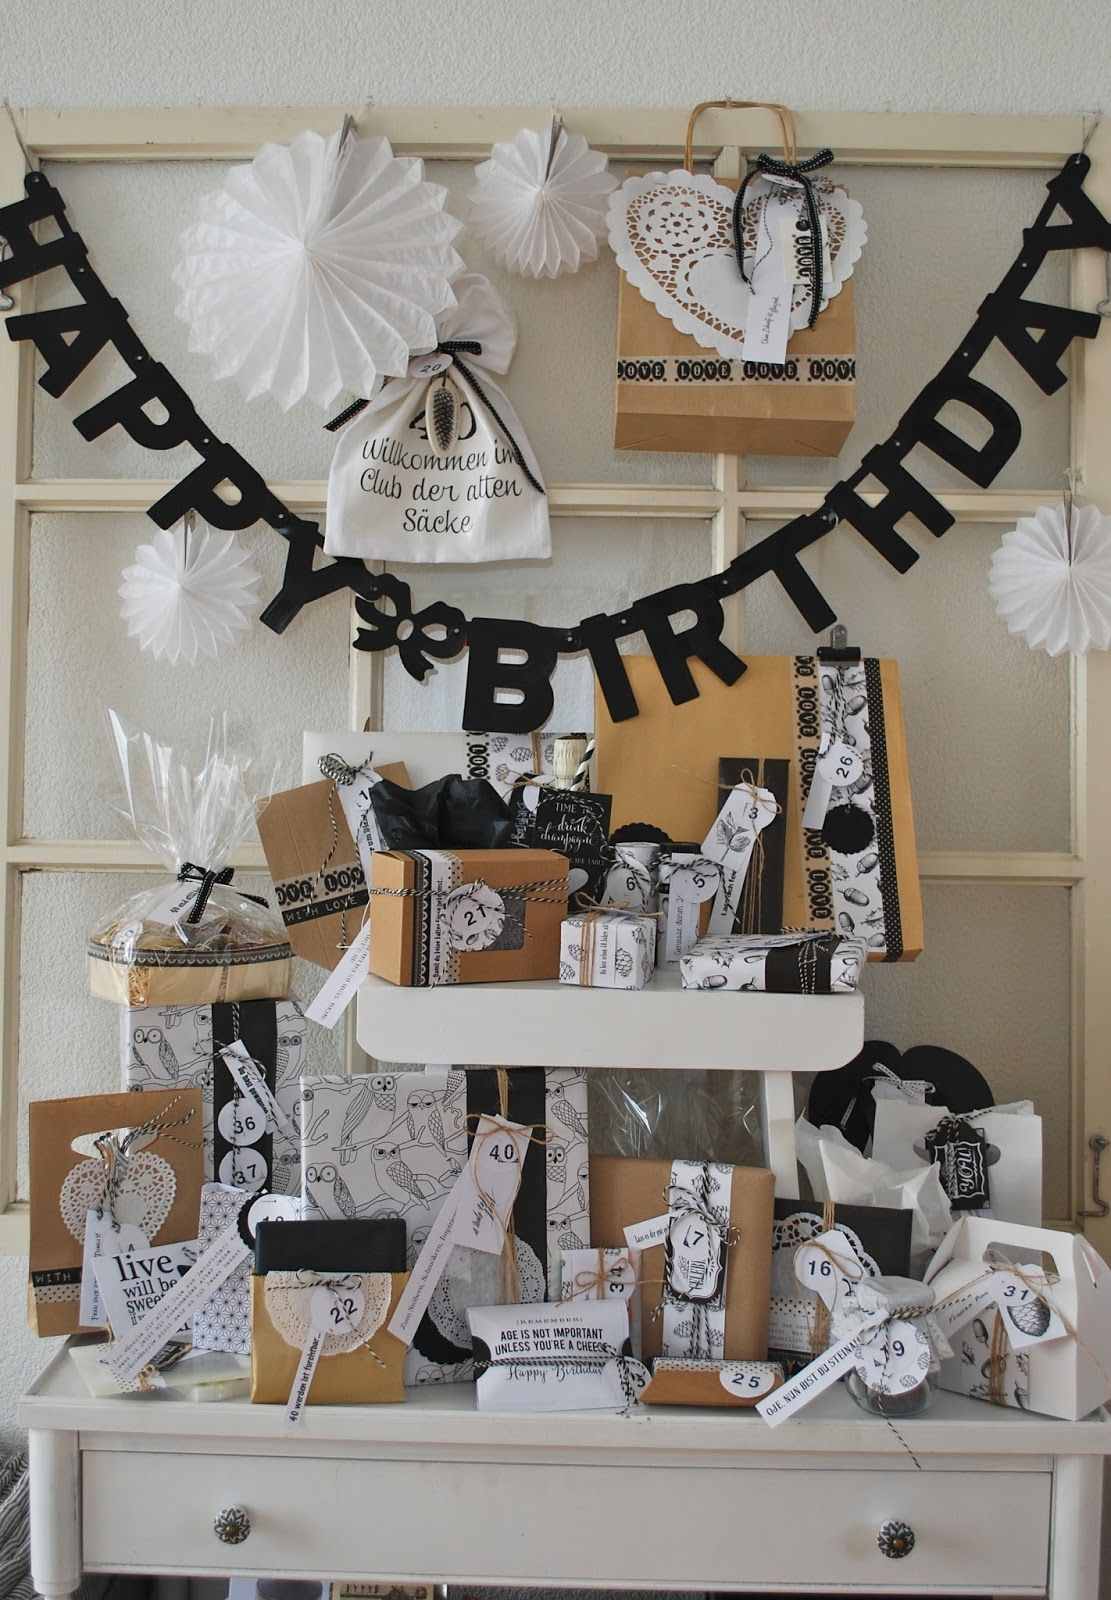 40 zum 40sten (mamas kram) | Privat | Pinterest | Birthday, Gifts ...